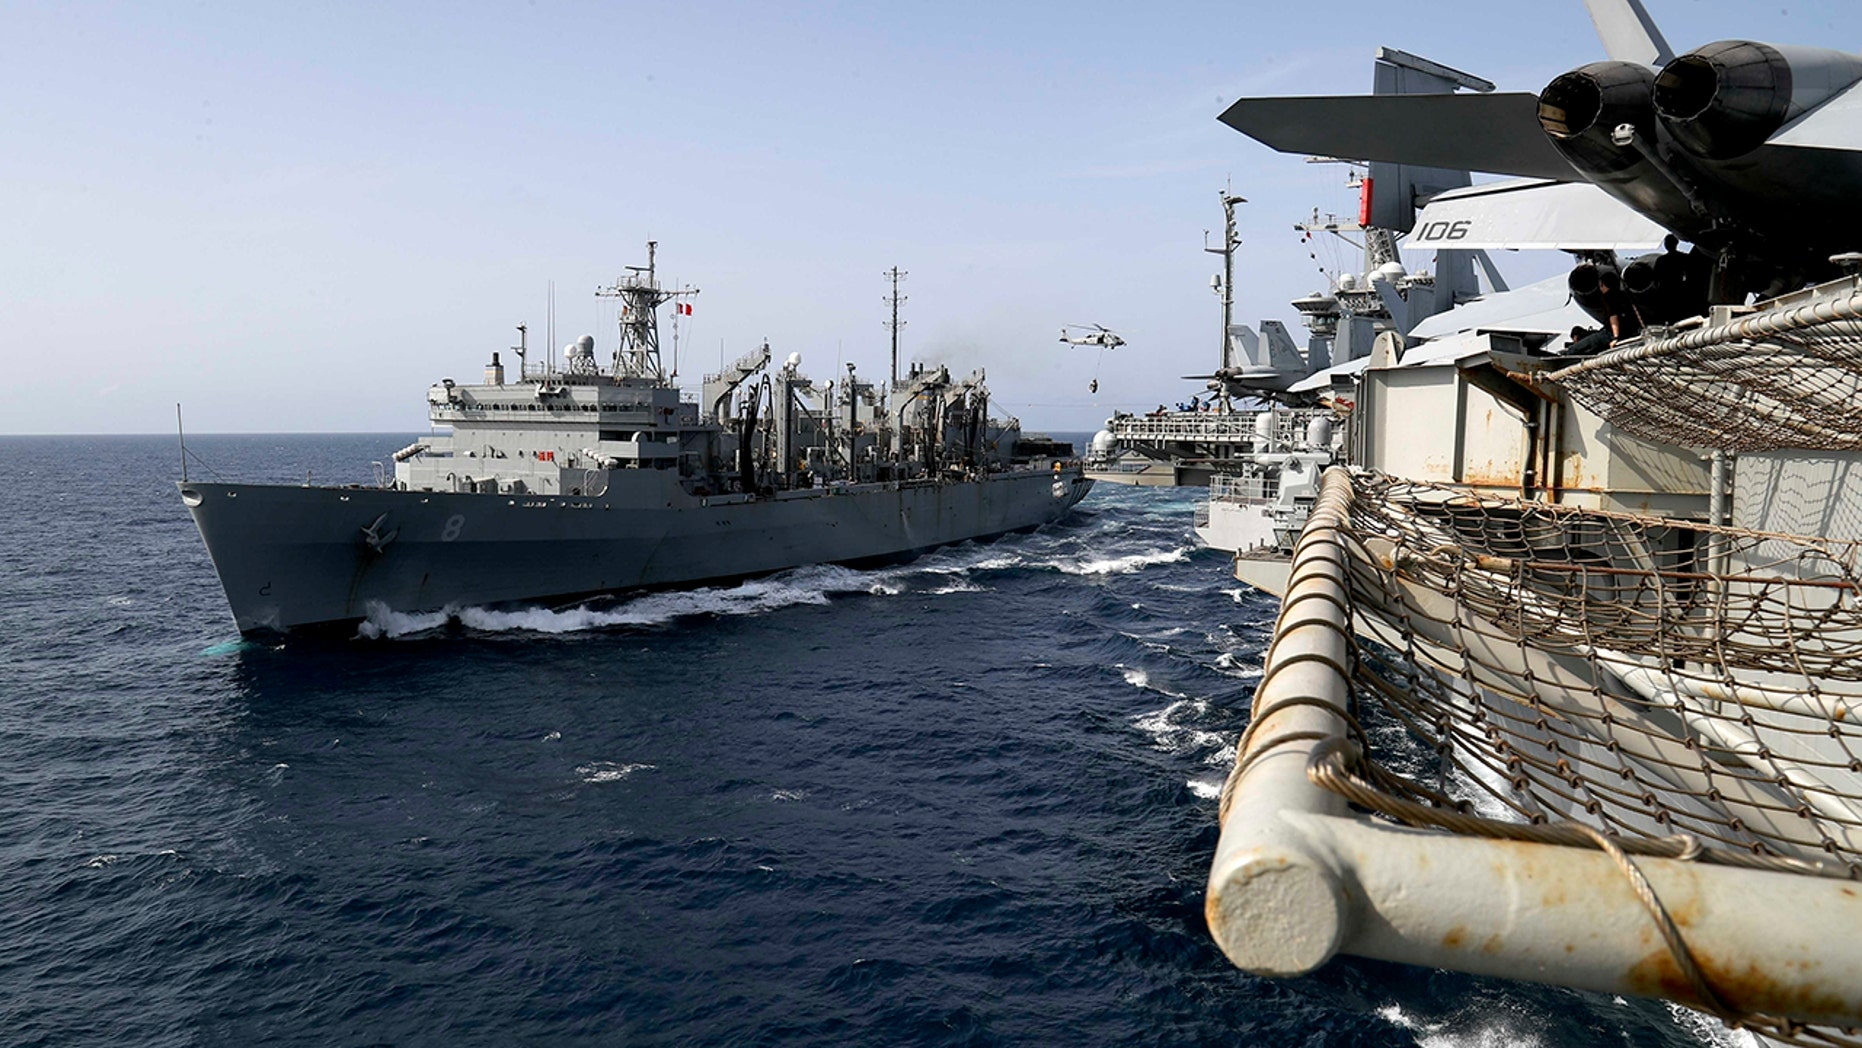 May 19: The fast combat support ship USNS Arctic transports cargo to the Nimitz-class aircraft carrier USS Abraham Lincoln during a replenishment-at-sea in the Arabian Sea. (Mass Communication Specialist 3rd Class Jeff Sherman/U.S. Navy via AP)